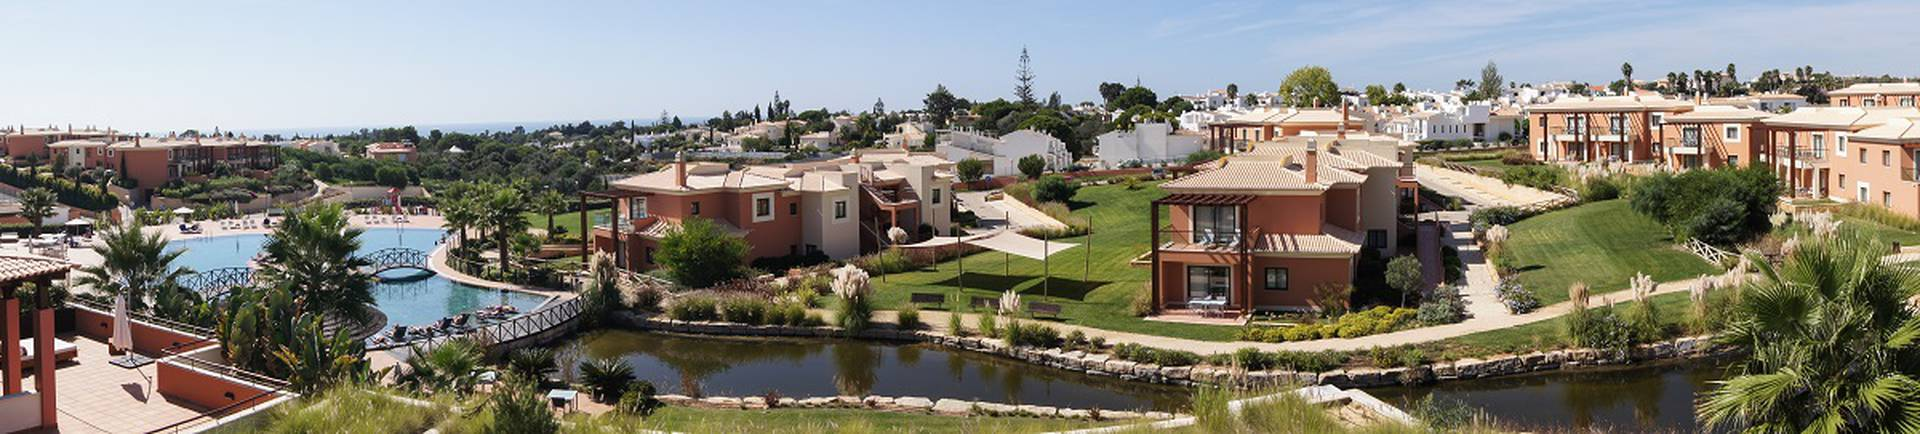 Monte Santo Resort - Carvoeiro -